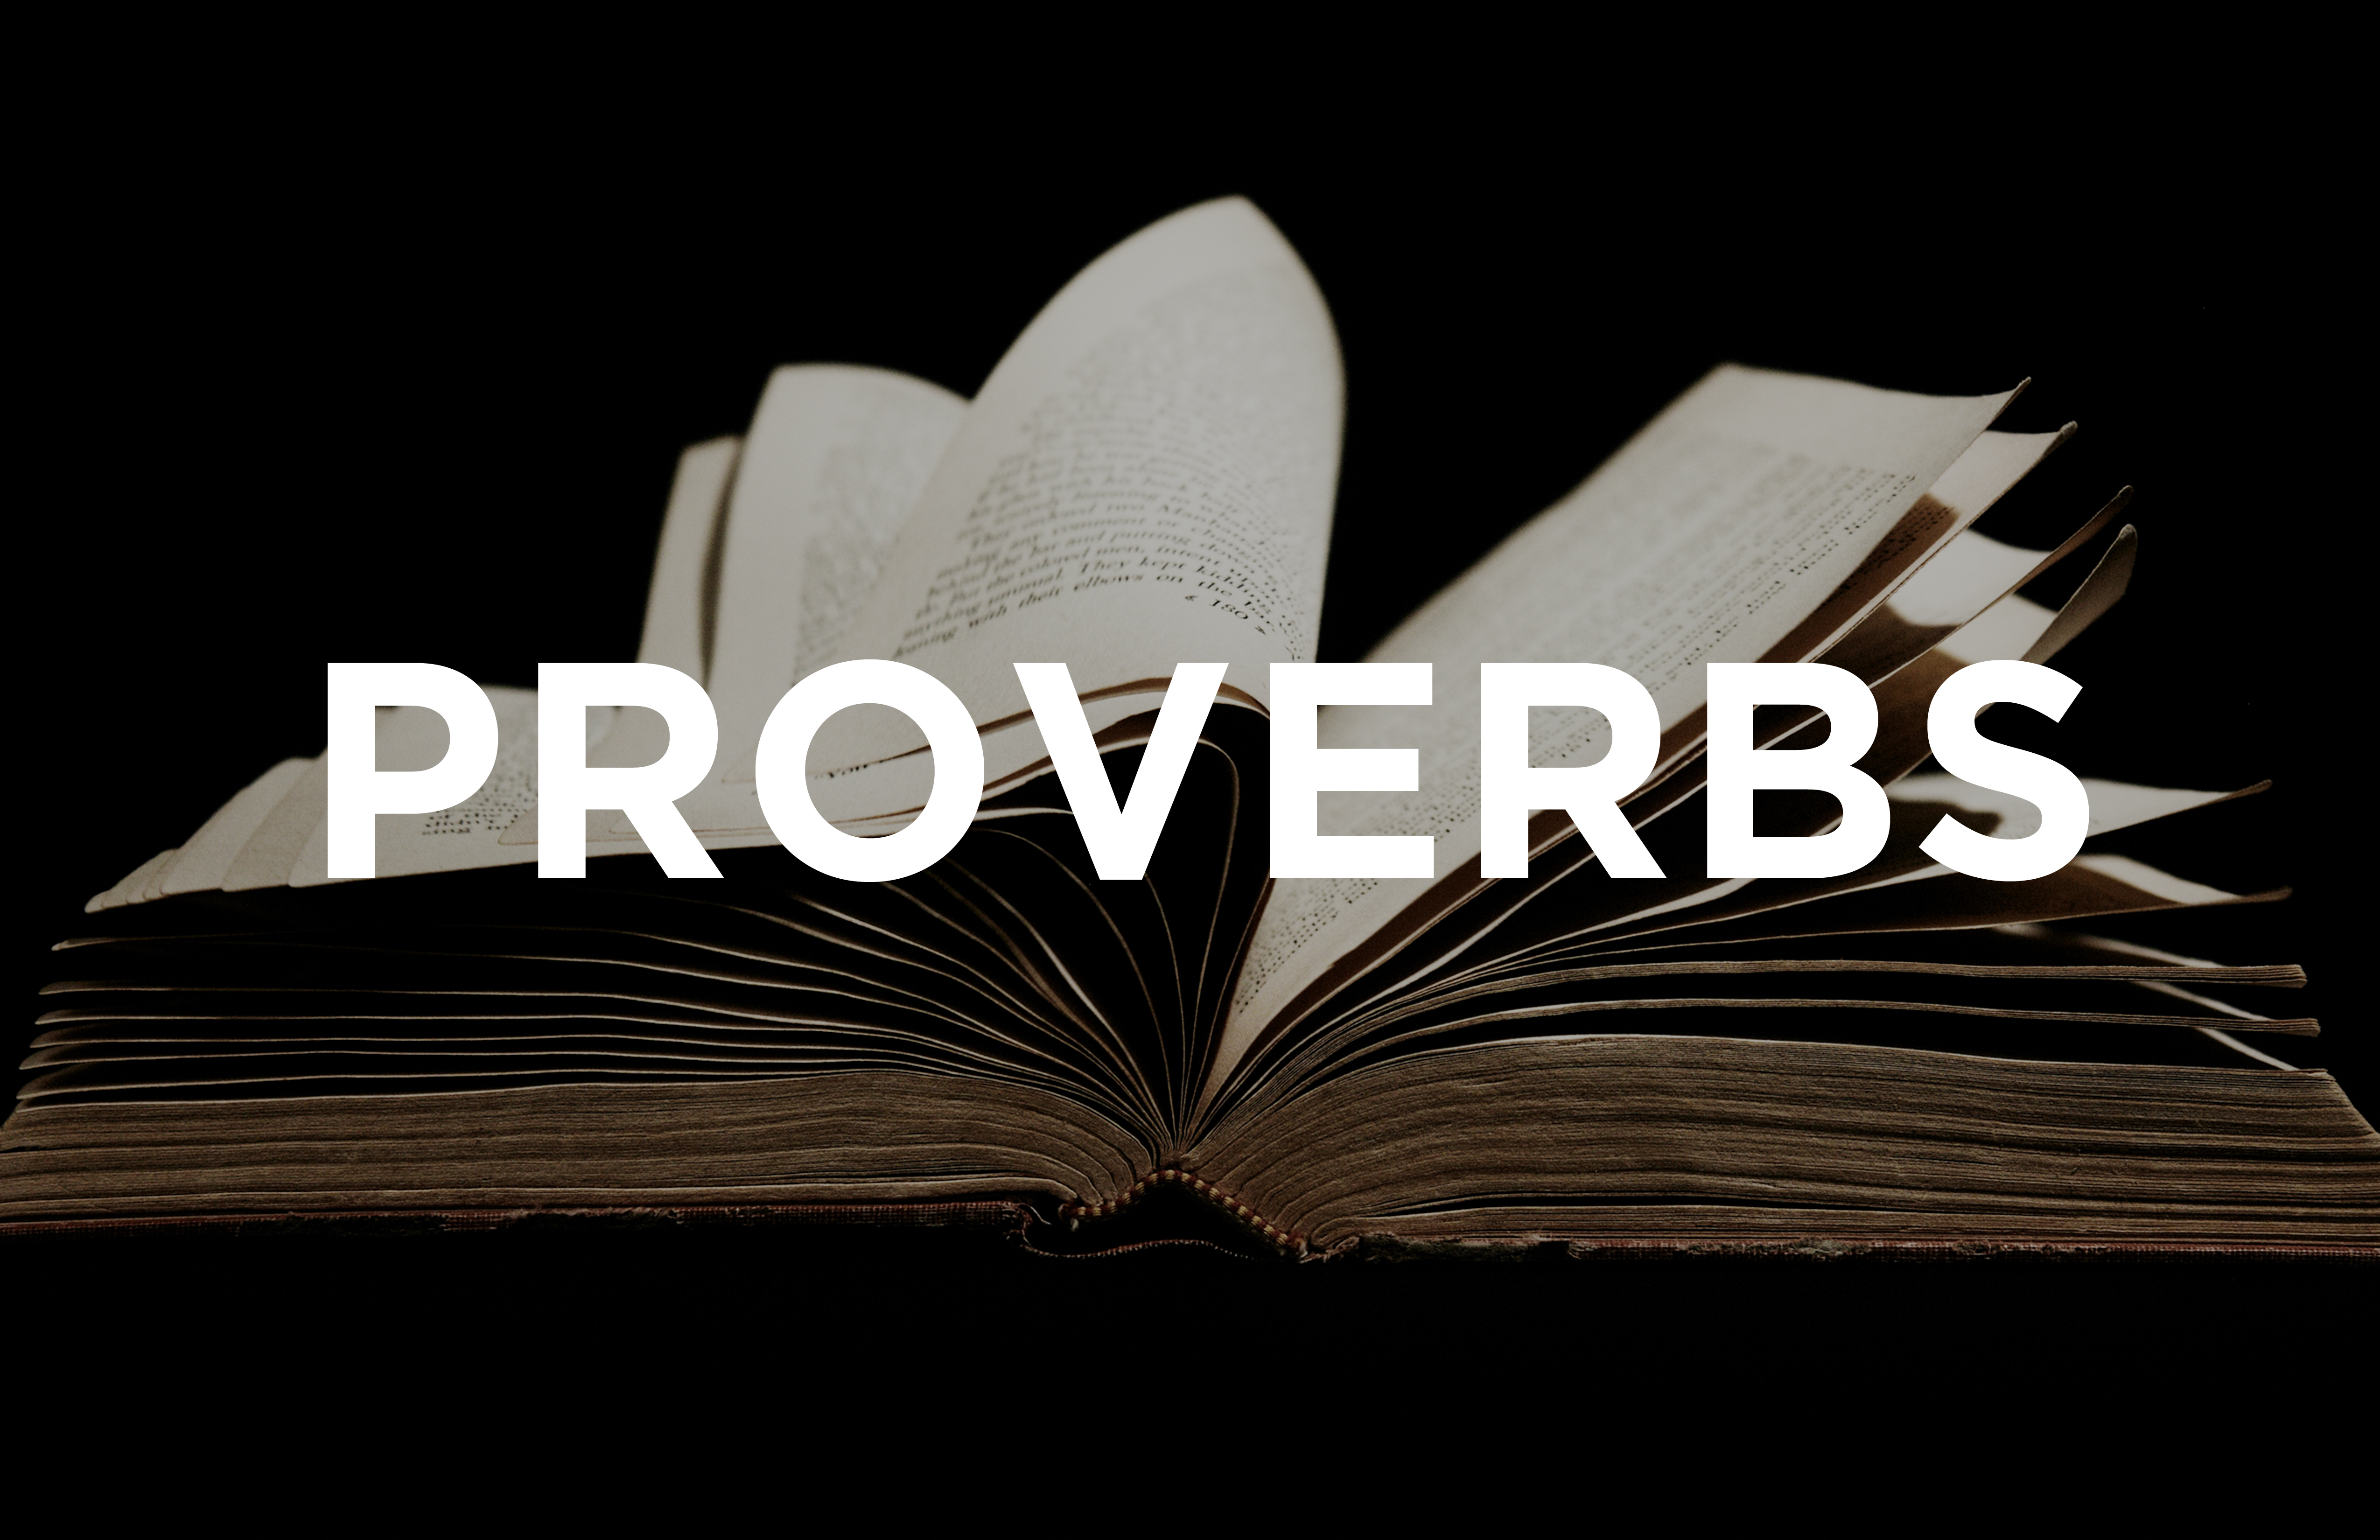 Proverbs banner